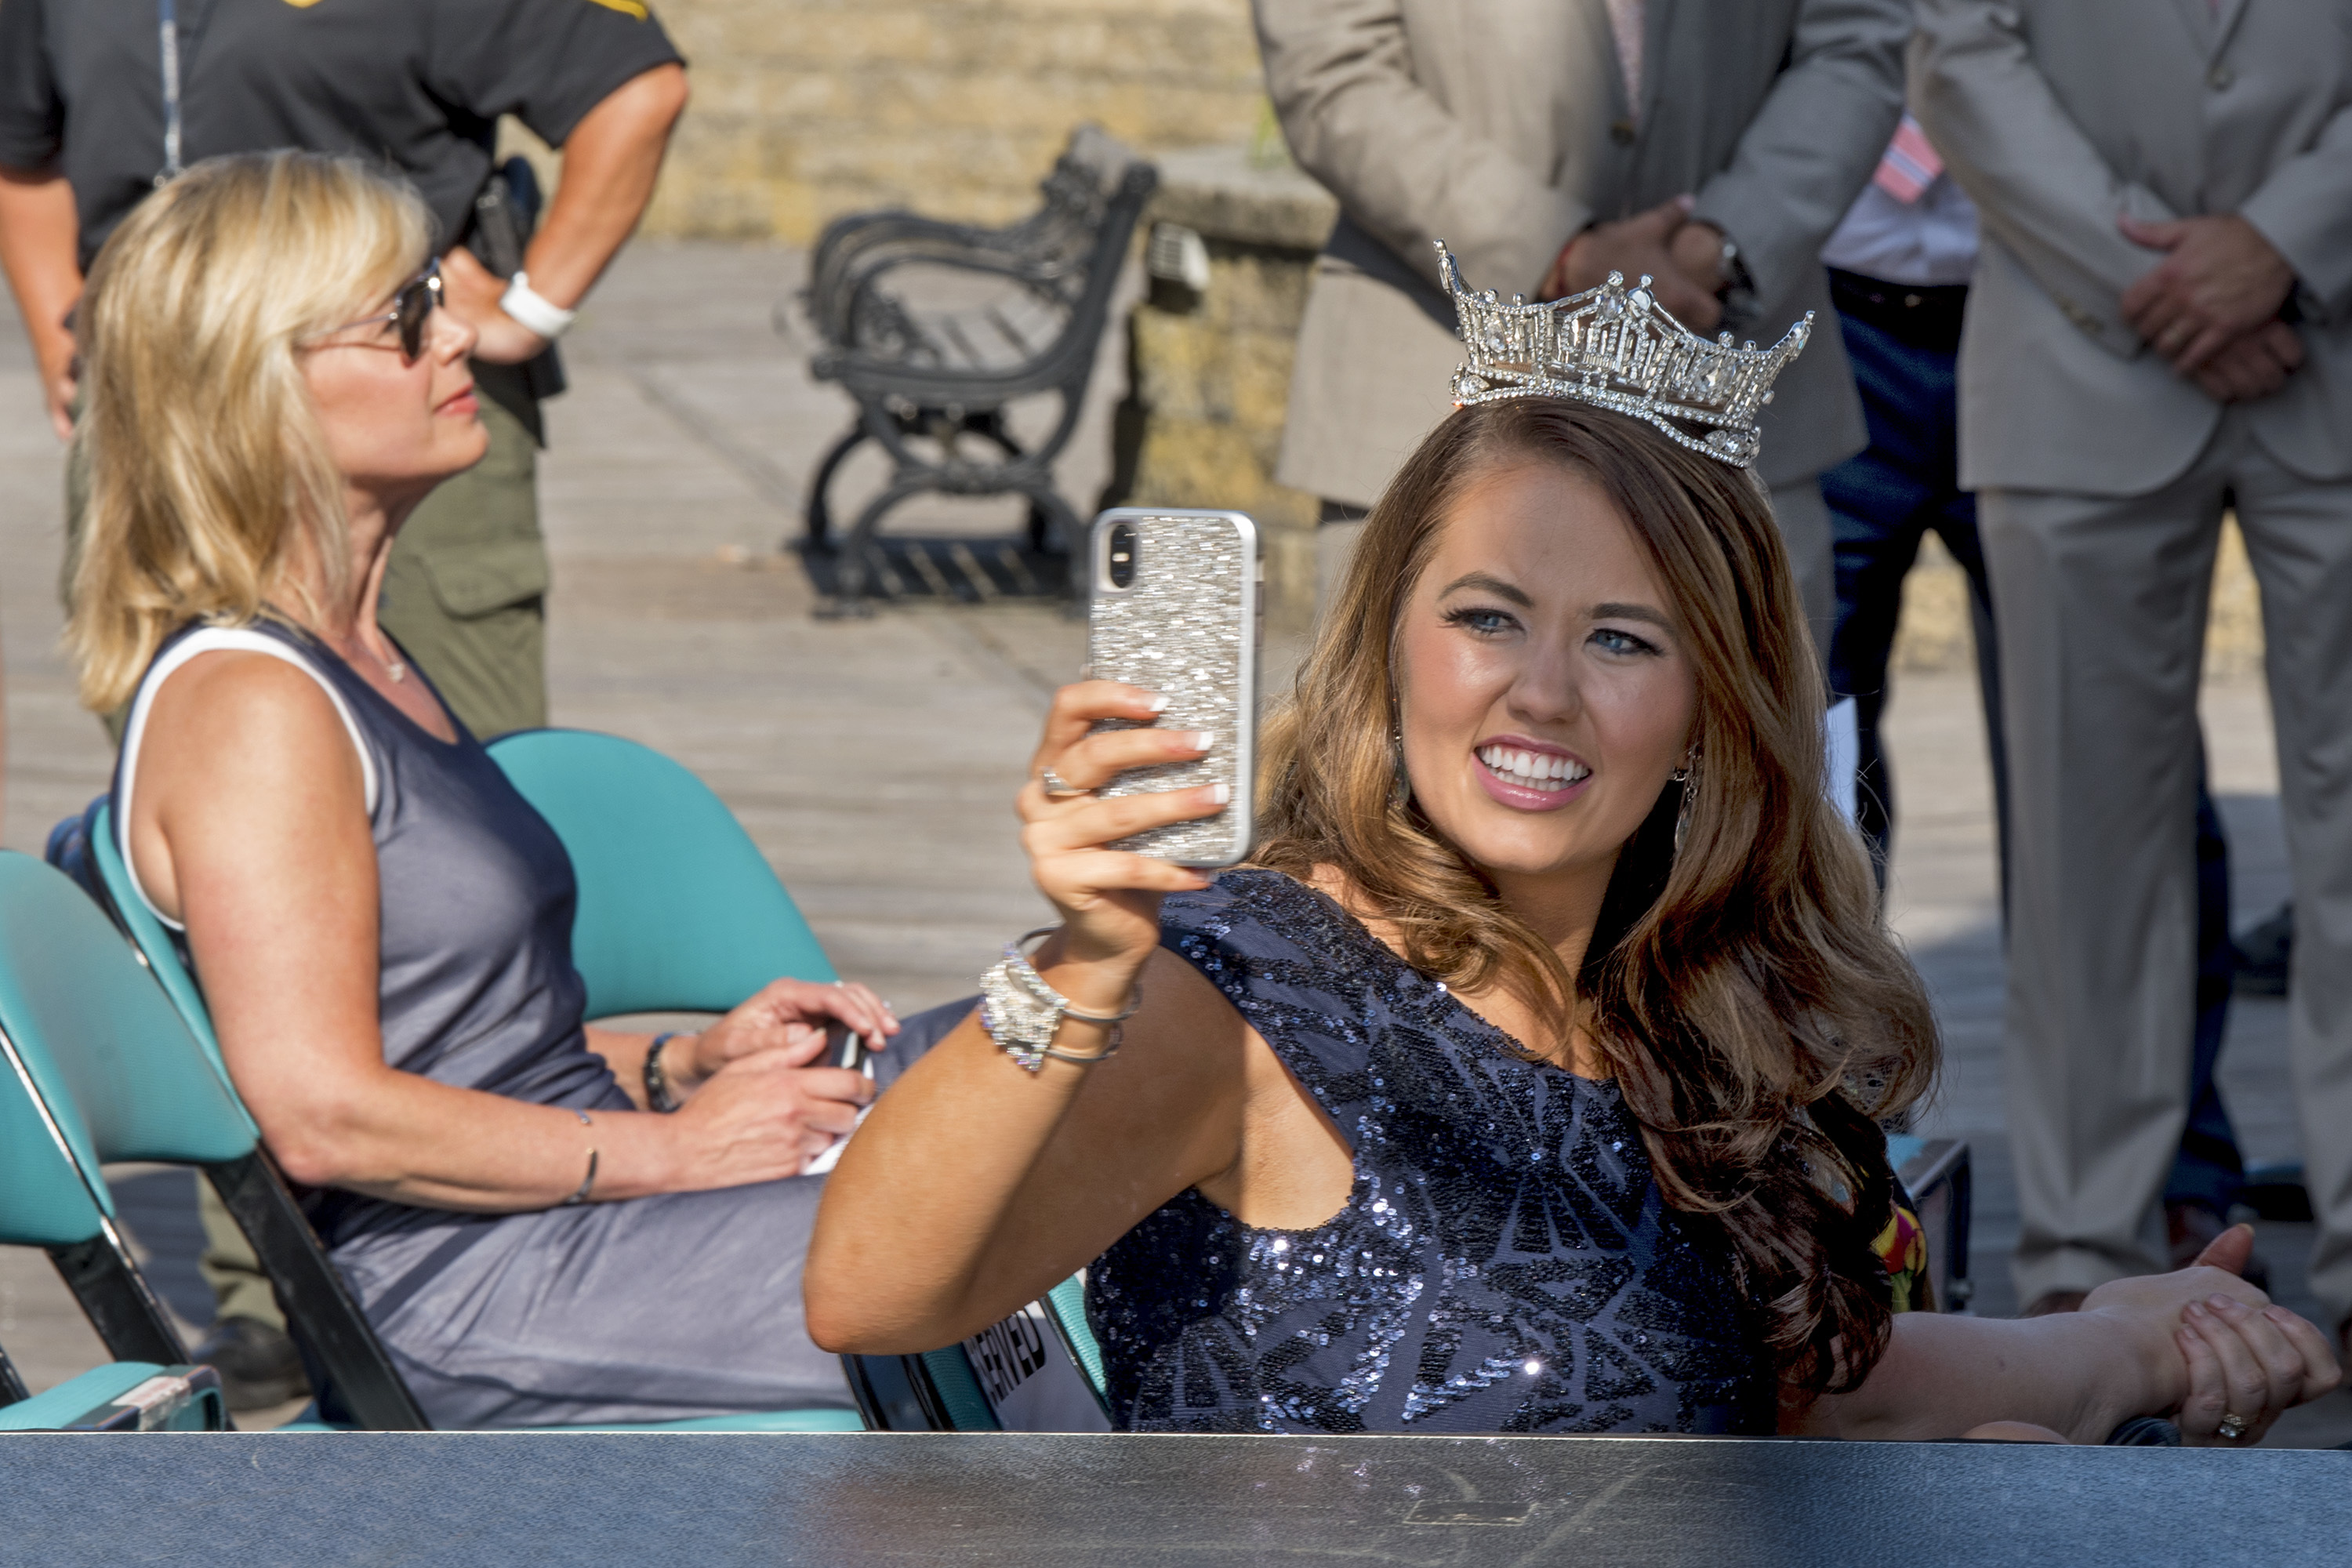 Miss America board chair Gretchen Carlson (left) is seated a row behind Miss America 2018 Cara Mund (right) during ceremonies as the Miss America contestants arrive on the Boardwalk in Atlantic City to kick off the 2019 pageant August 30, 2018. Earlier this month, Mund wrote a public letter criticizing Carlson and the Miss America organization. The two did not interact during the event.